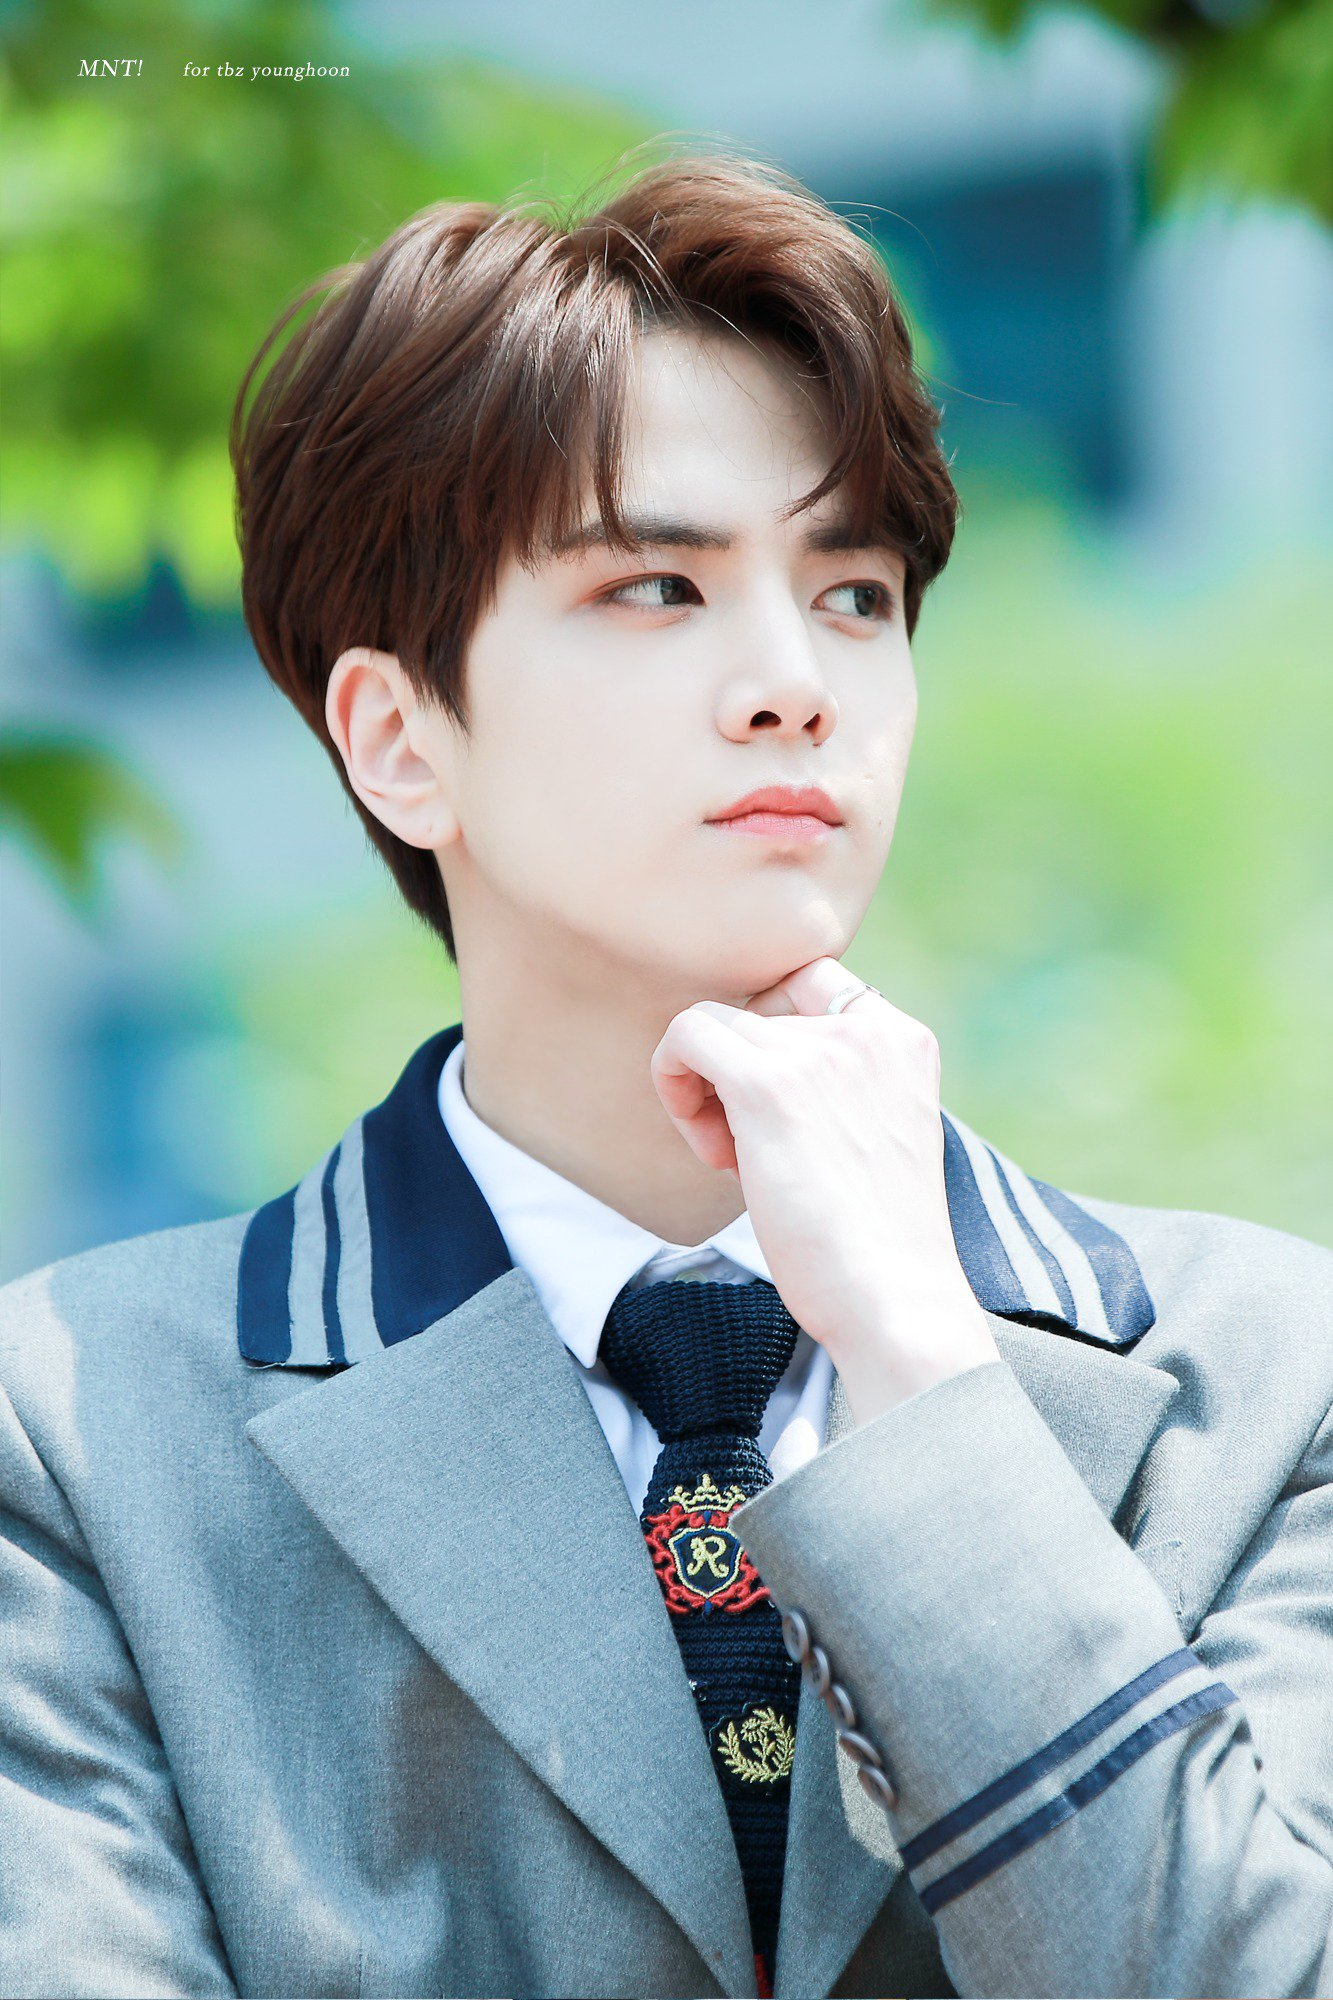 YoungHoon the boyz, YoungHoon insect, younghoon, youghoon afraid, younghoon cute